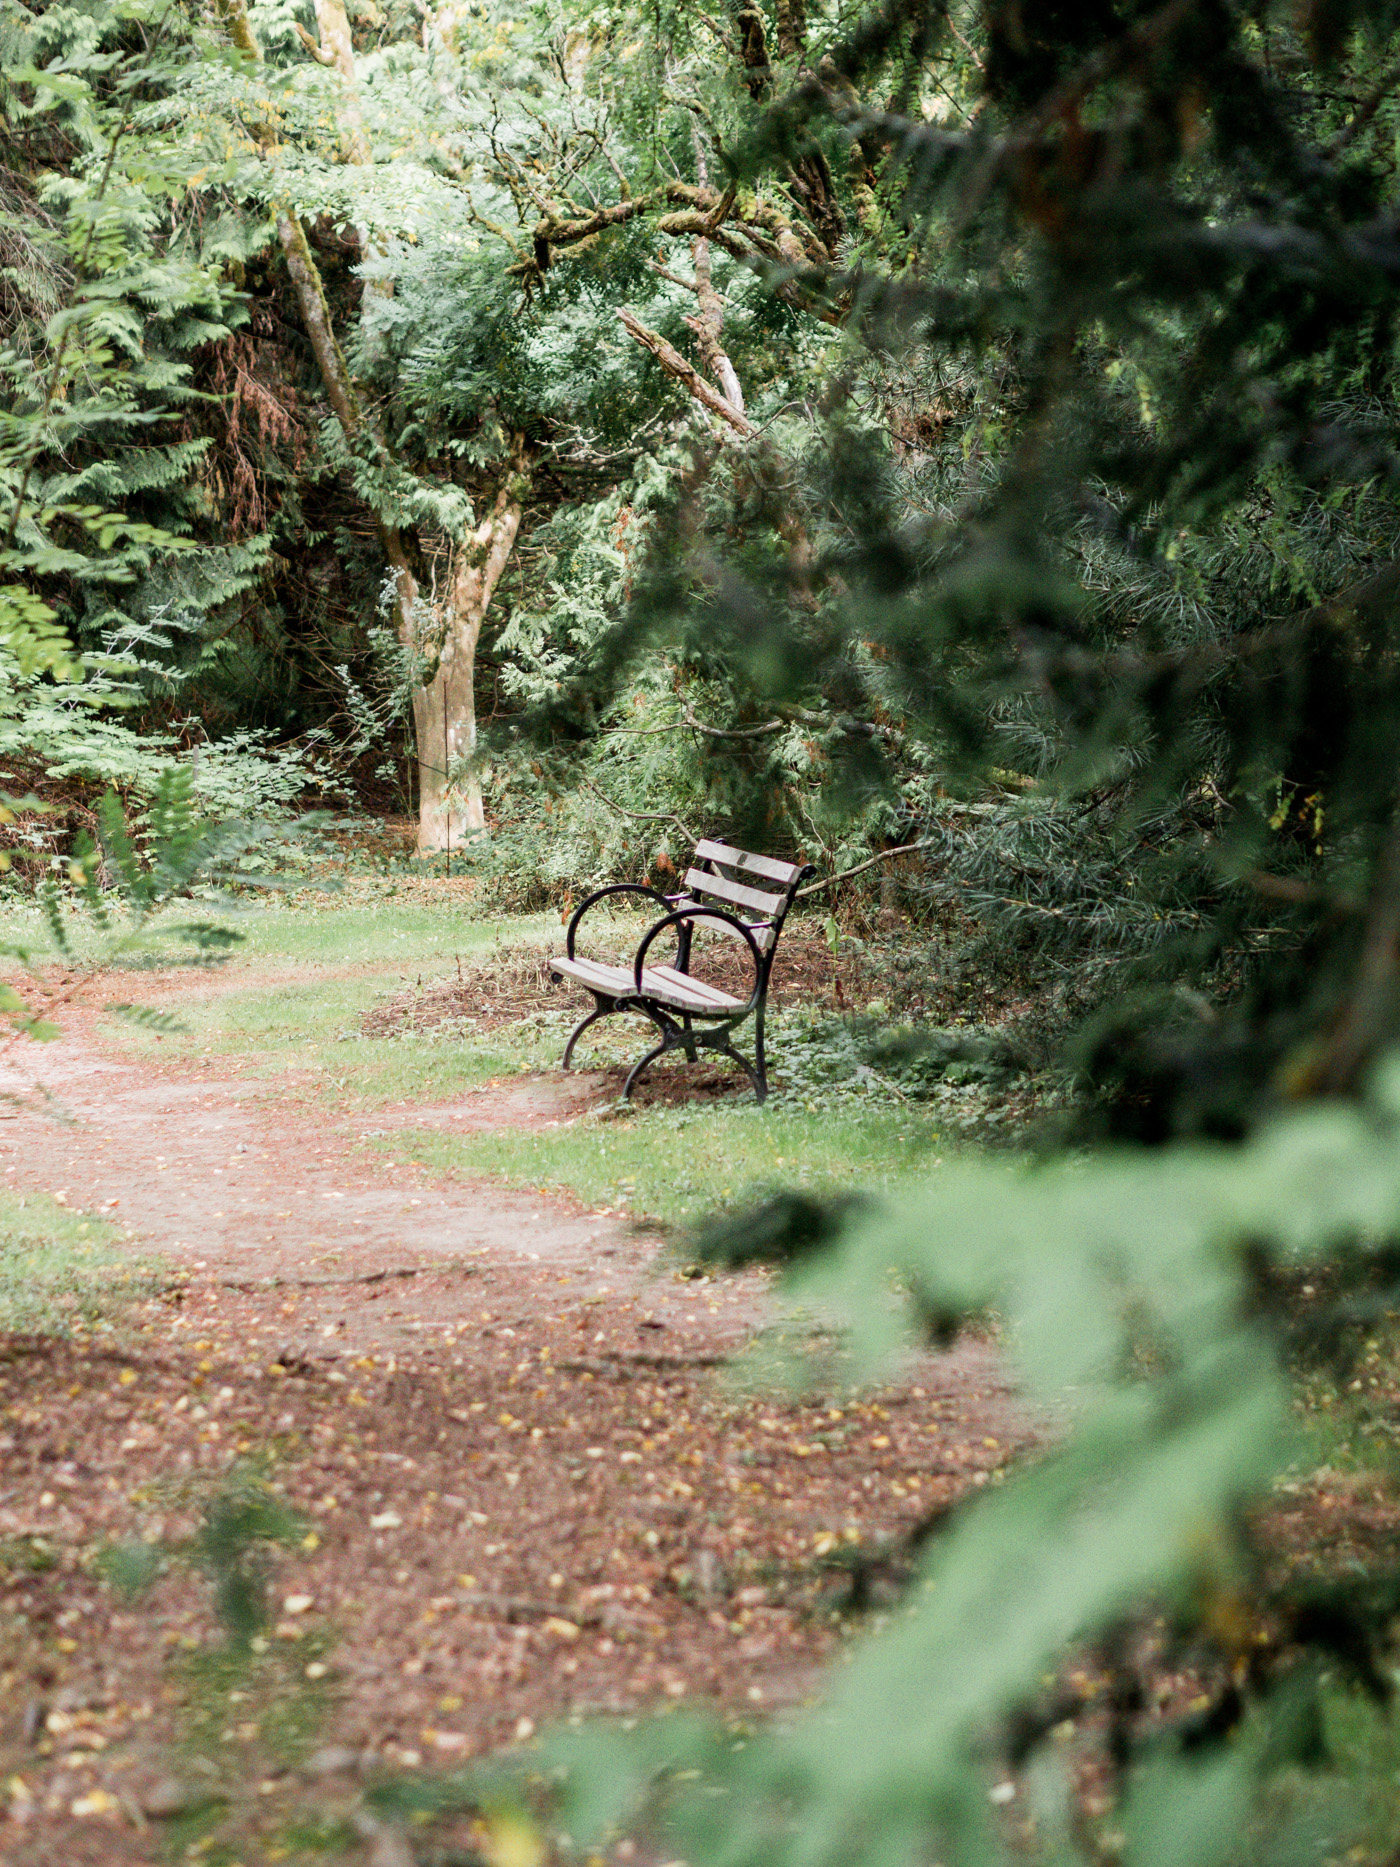 Exploring the local parks in and around Seattle, Washington